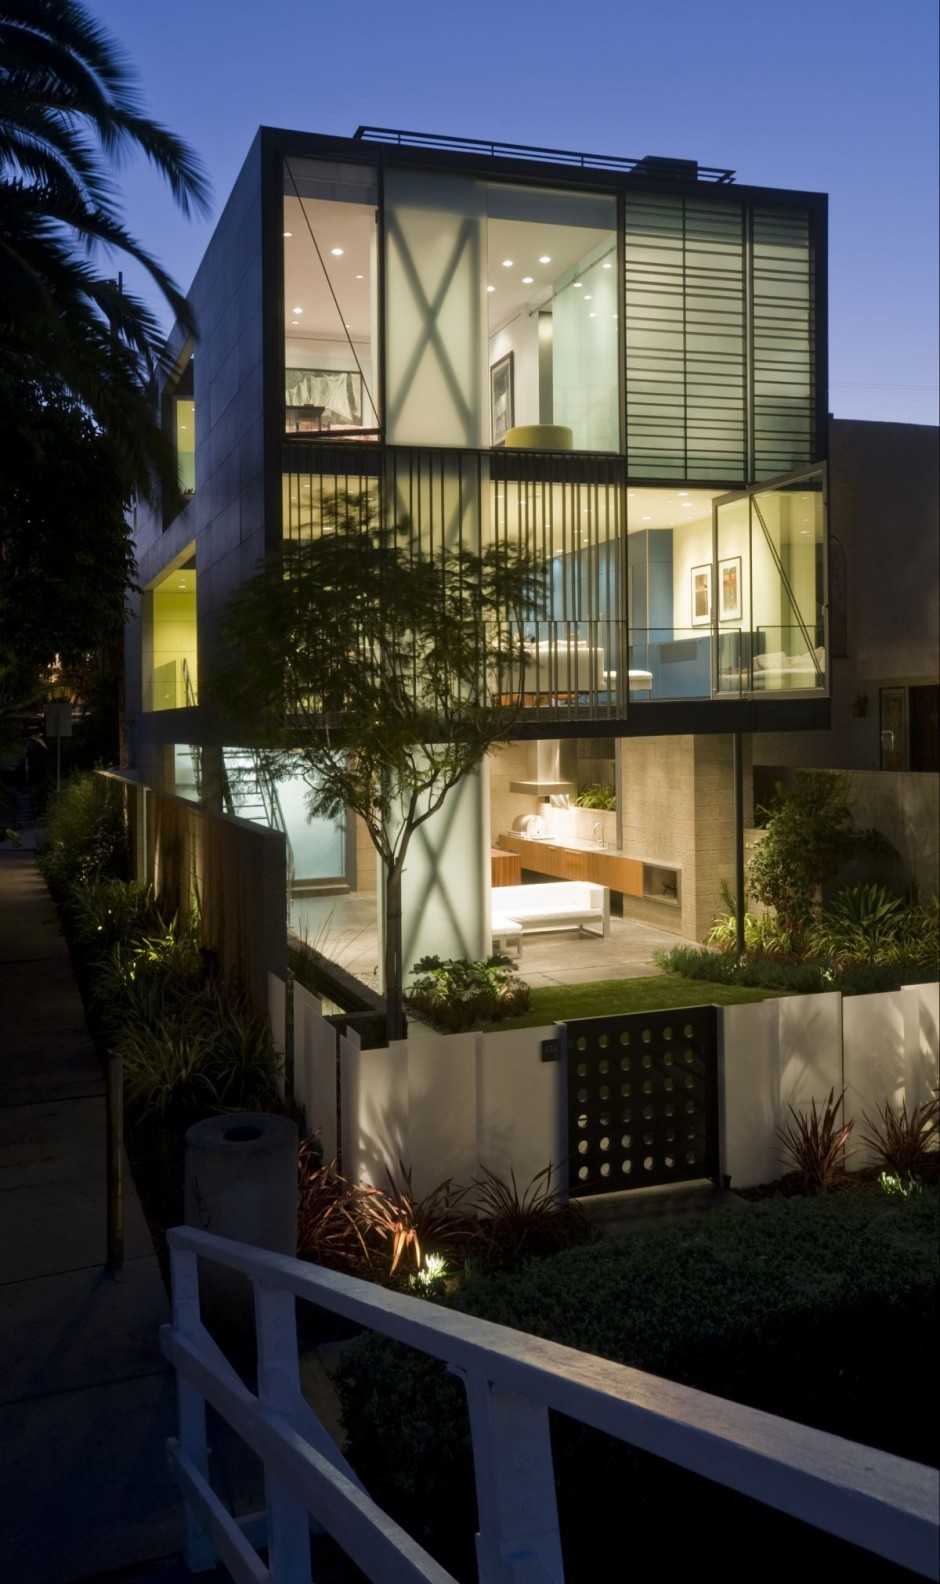 The Hover House 3 By Glen Irani Architects